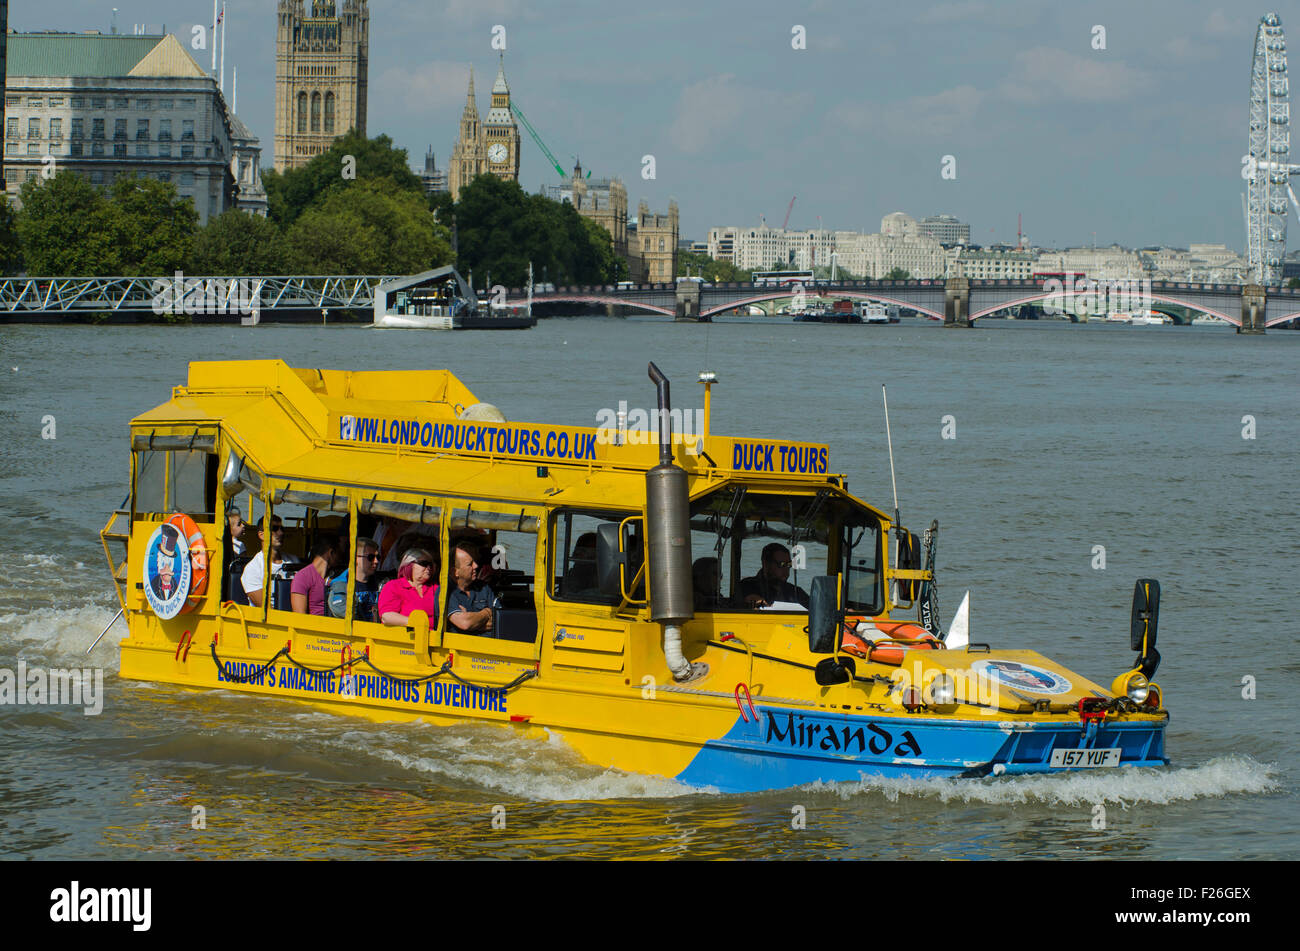 London,UK,11/09/2015 London Duck Tours at work carrying tourists on sunny day on Thames.DUKW,or Duck,is six-wheel - Stock Image